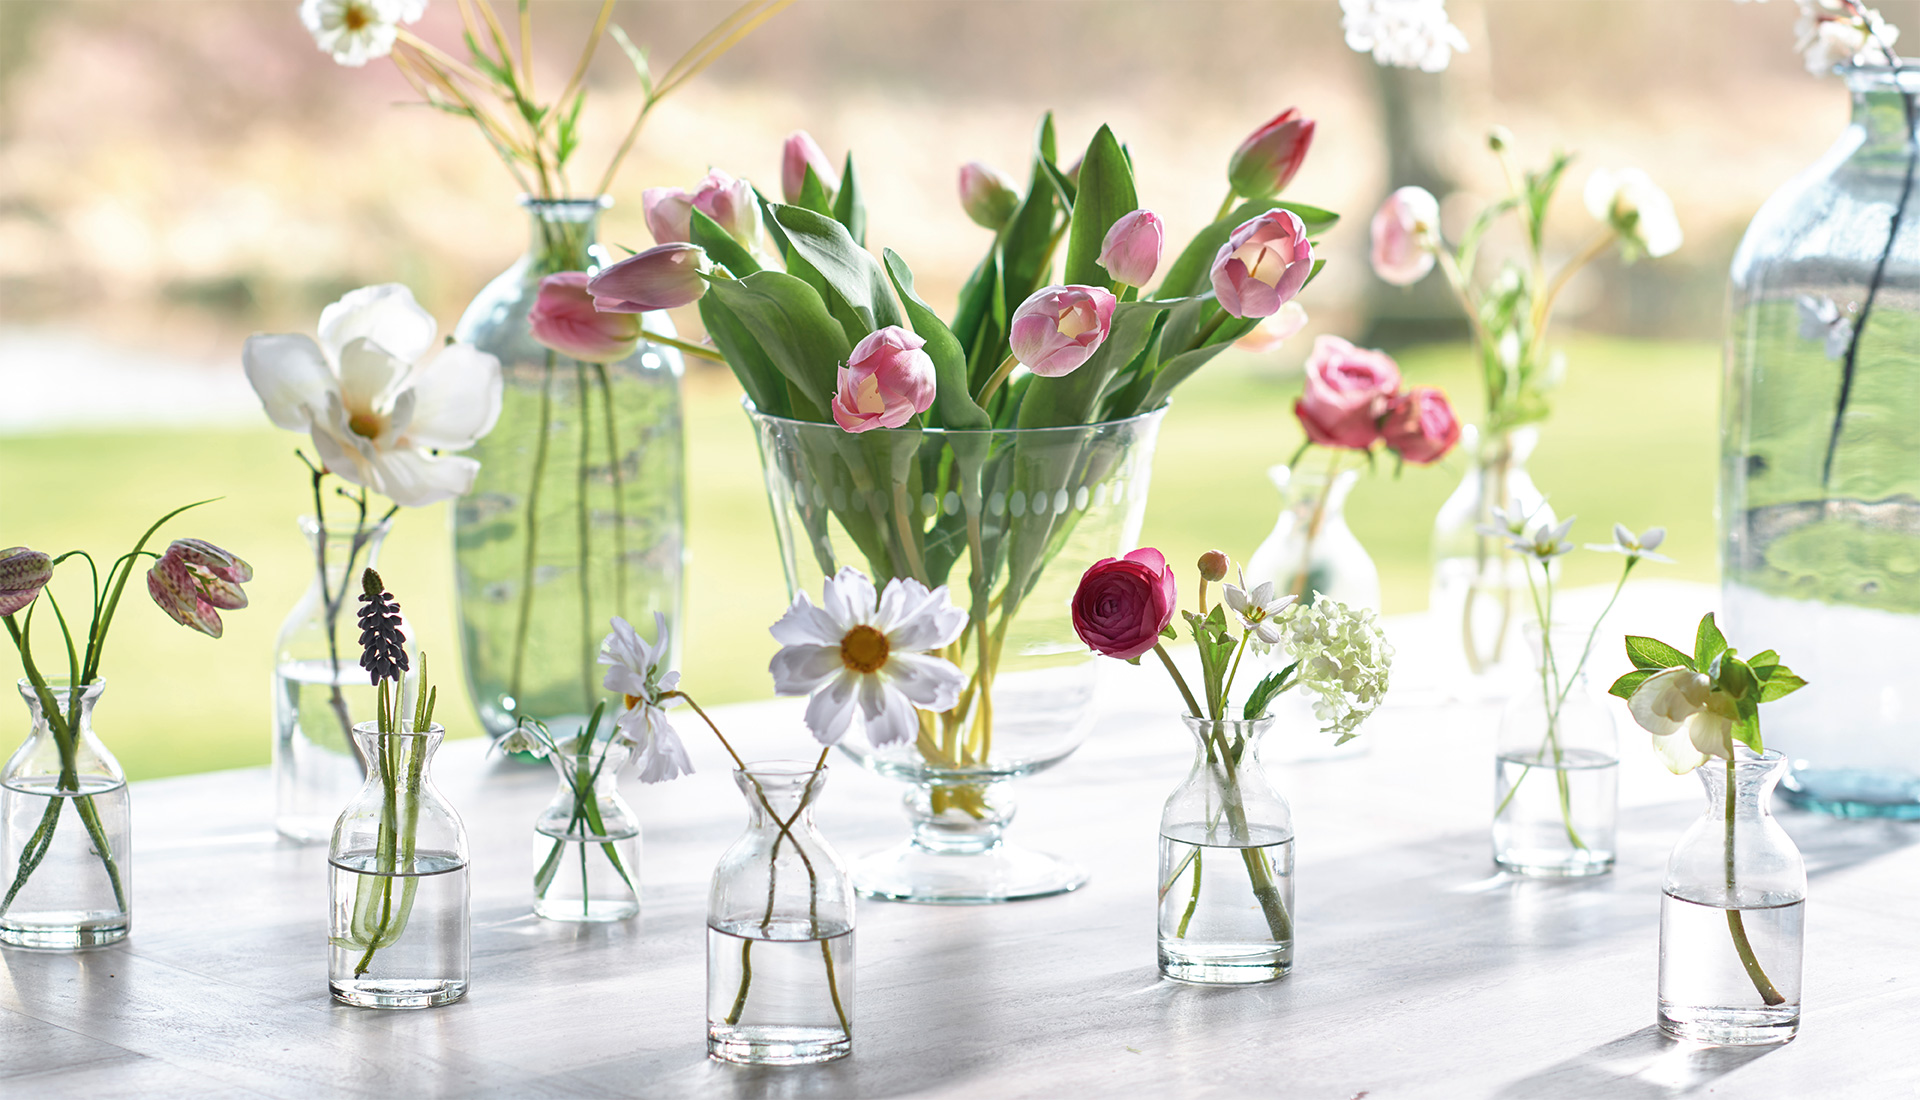 flowers and glass